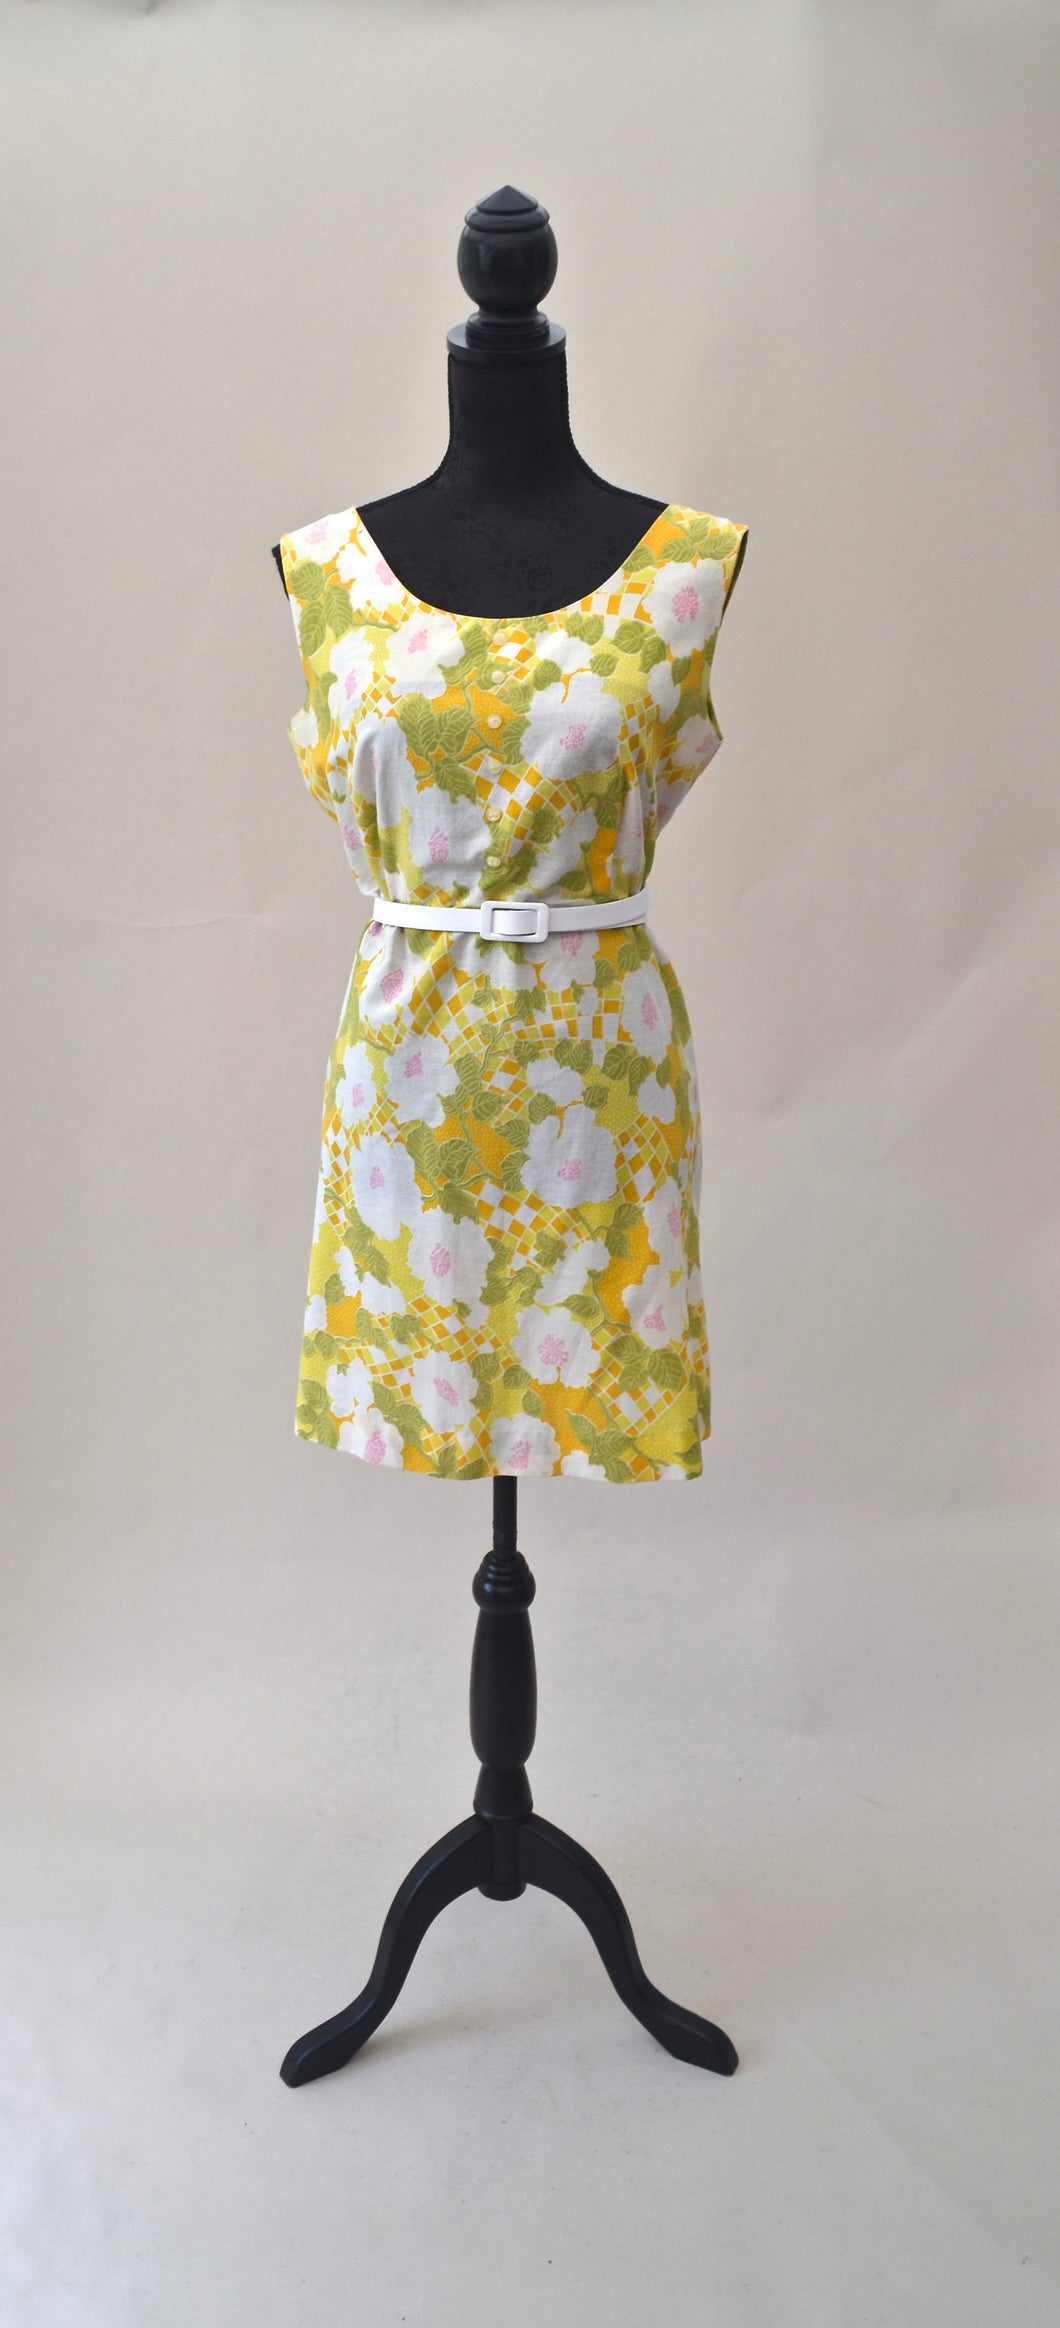 1960s floral shift dress | Yellows and green dress | Flower patterned midi dress | Est UK size 14